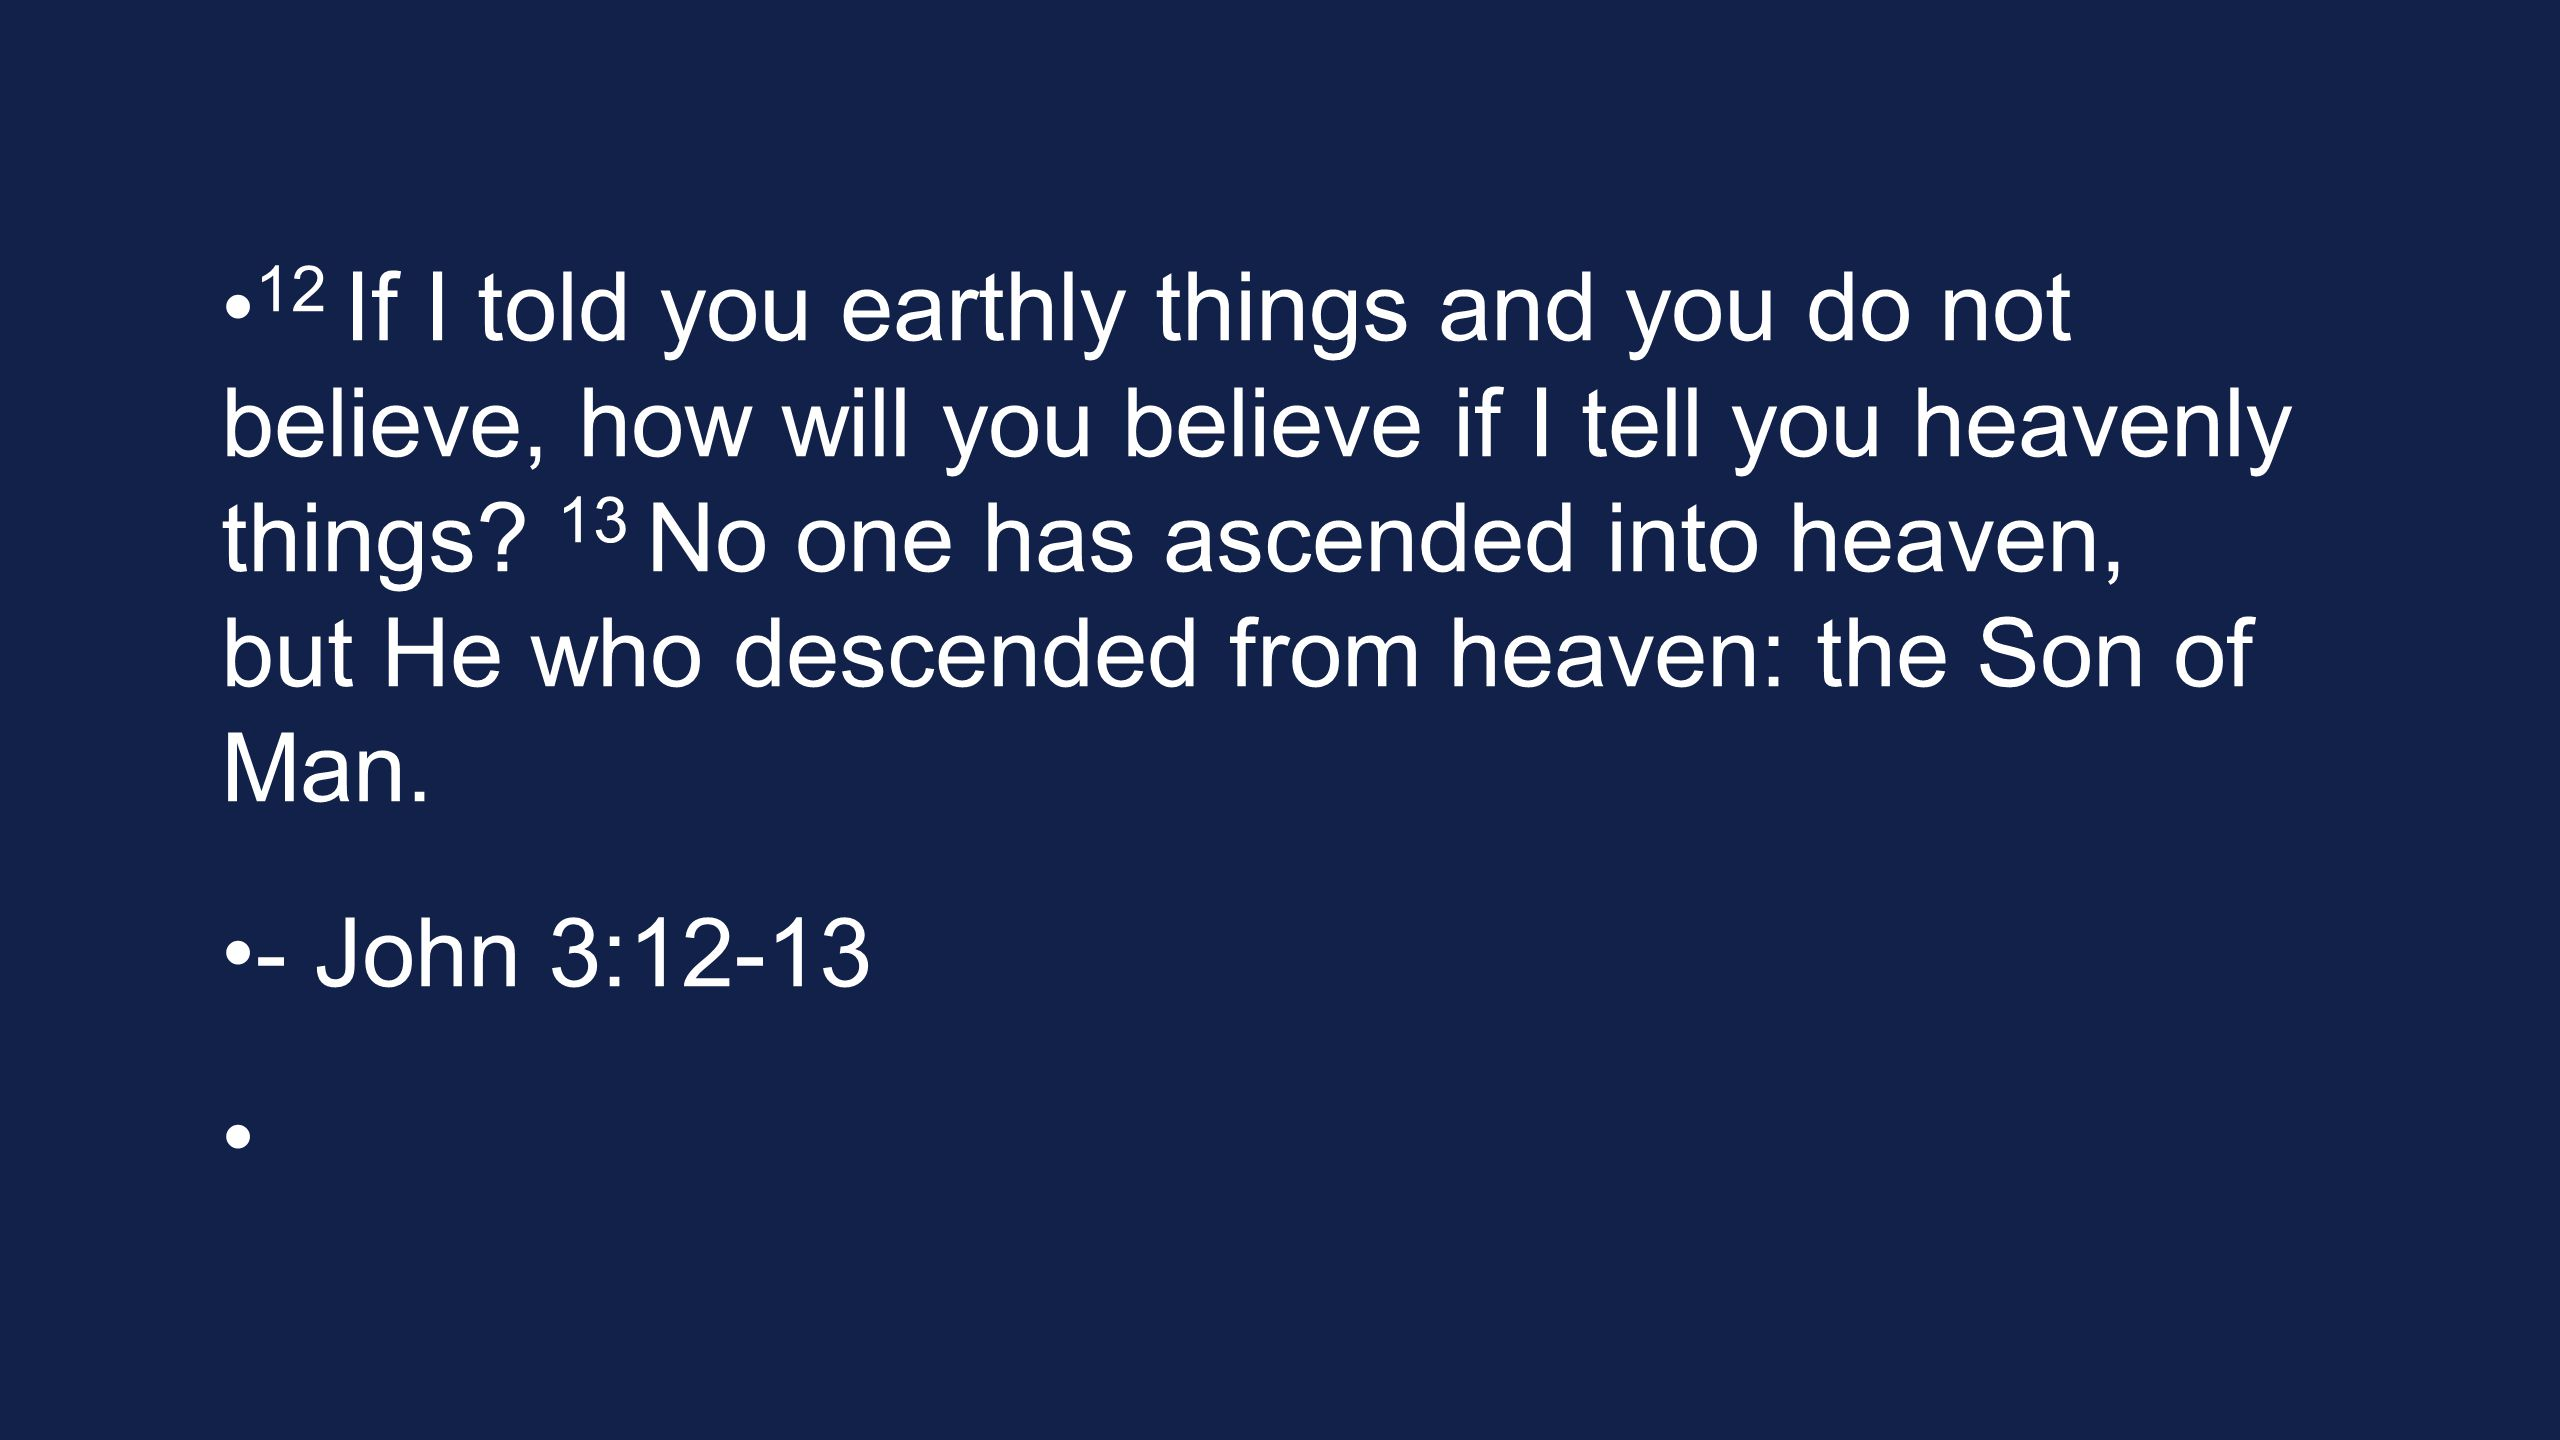 12 If I told you earthly things and you do not believe, how will you believe if I tell you heavenly things.